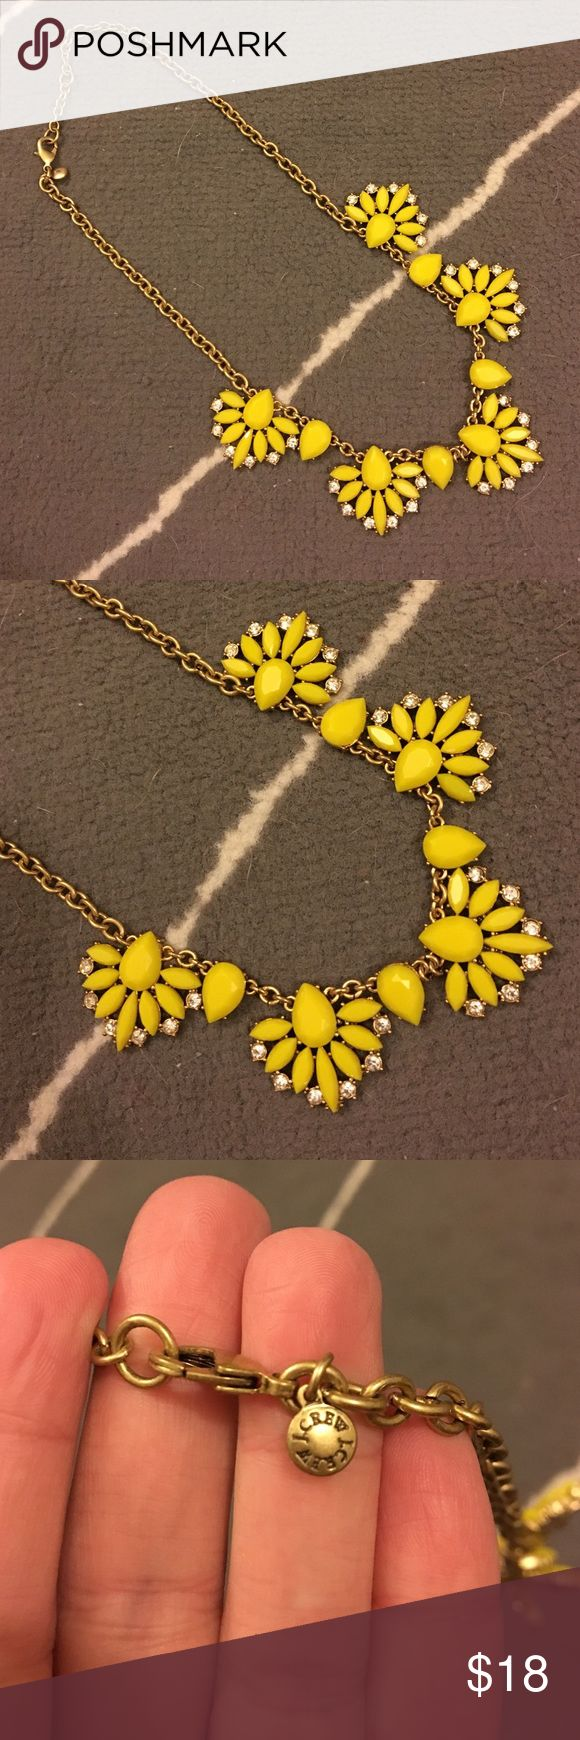 """J.Crew Yellow Statement Necklace Barely worn, purchased last year! Chain is a bronze color with J.Crew charm at the clasp. Five yellow """"fans"""" with teardrop stones between them and crystals at the bottom. Perfect punch of color for spring! J. Crew Jewelry Necklaces"""